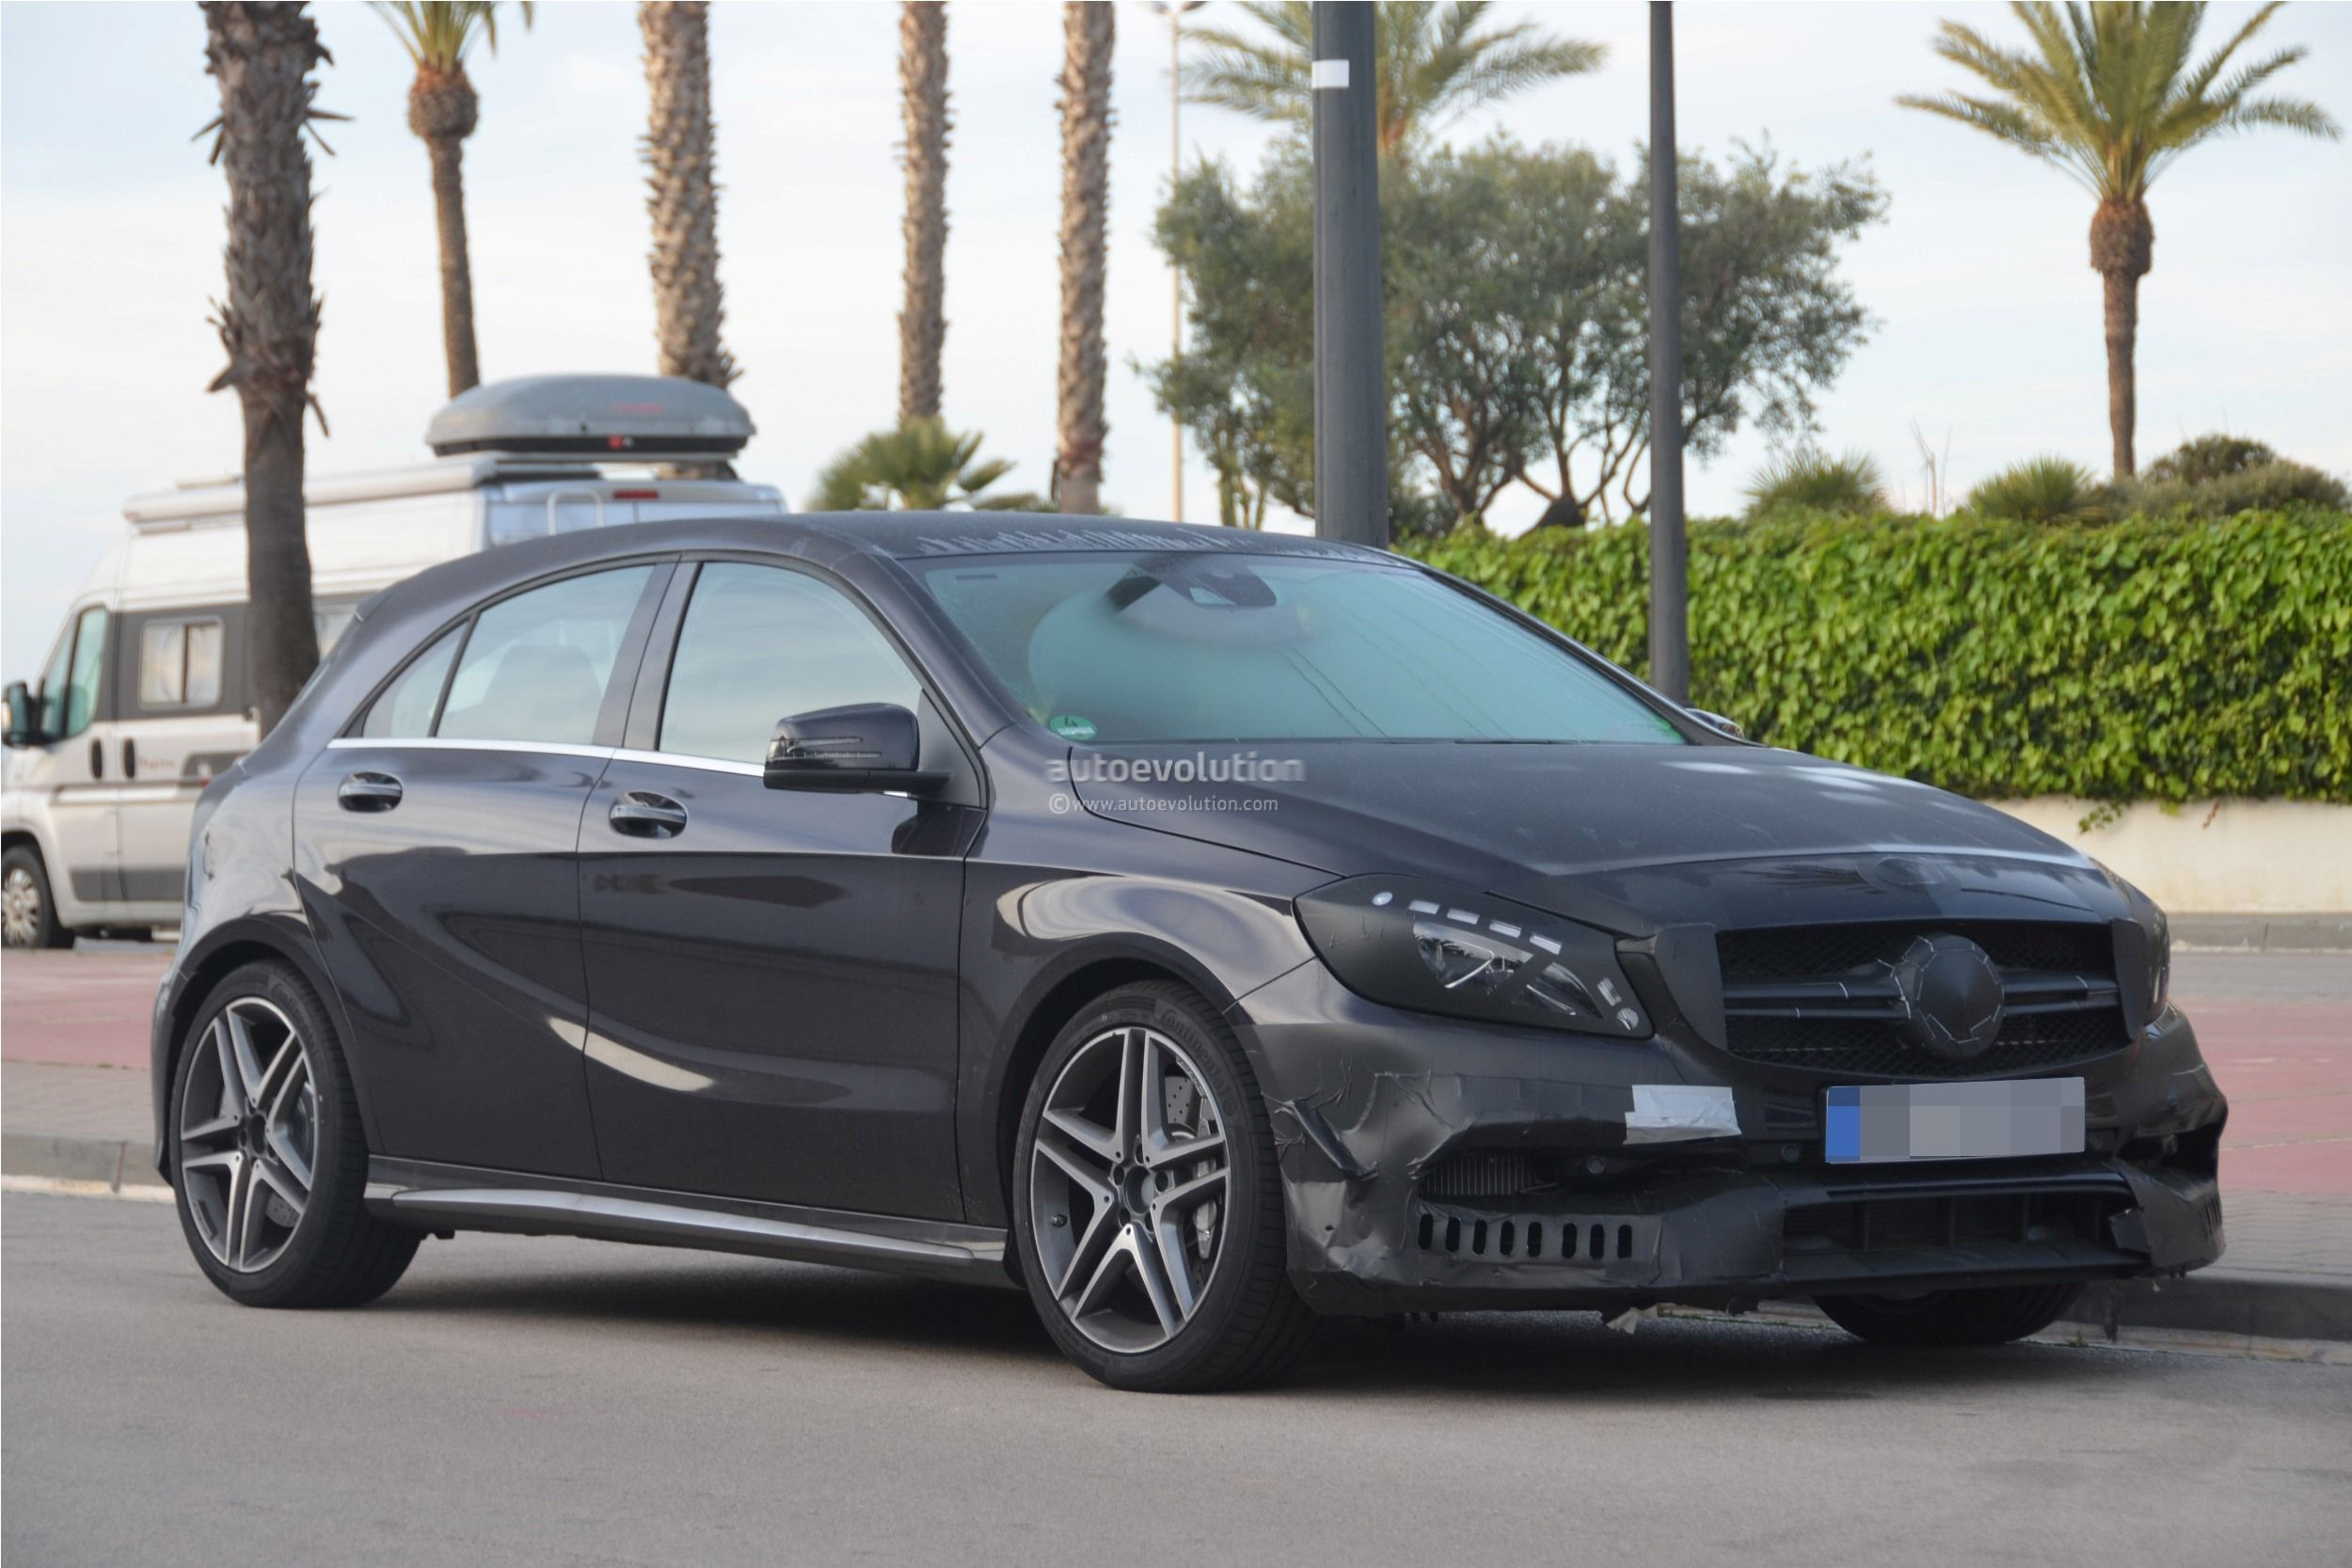 2016 - [Mercedes] Classe A restylée - Page 5 2016-mercedes-benz-a-45-amg-facelift-spied-photo-gallery_11